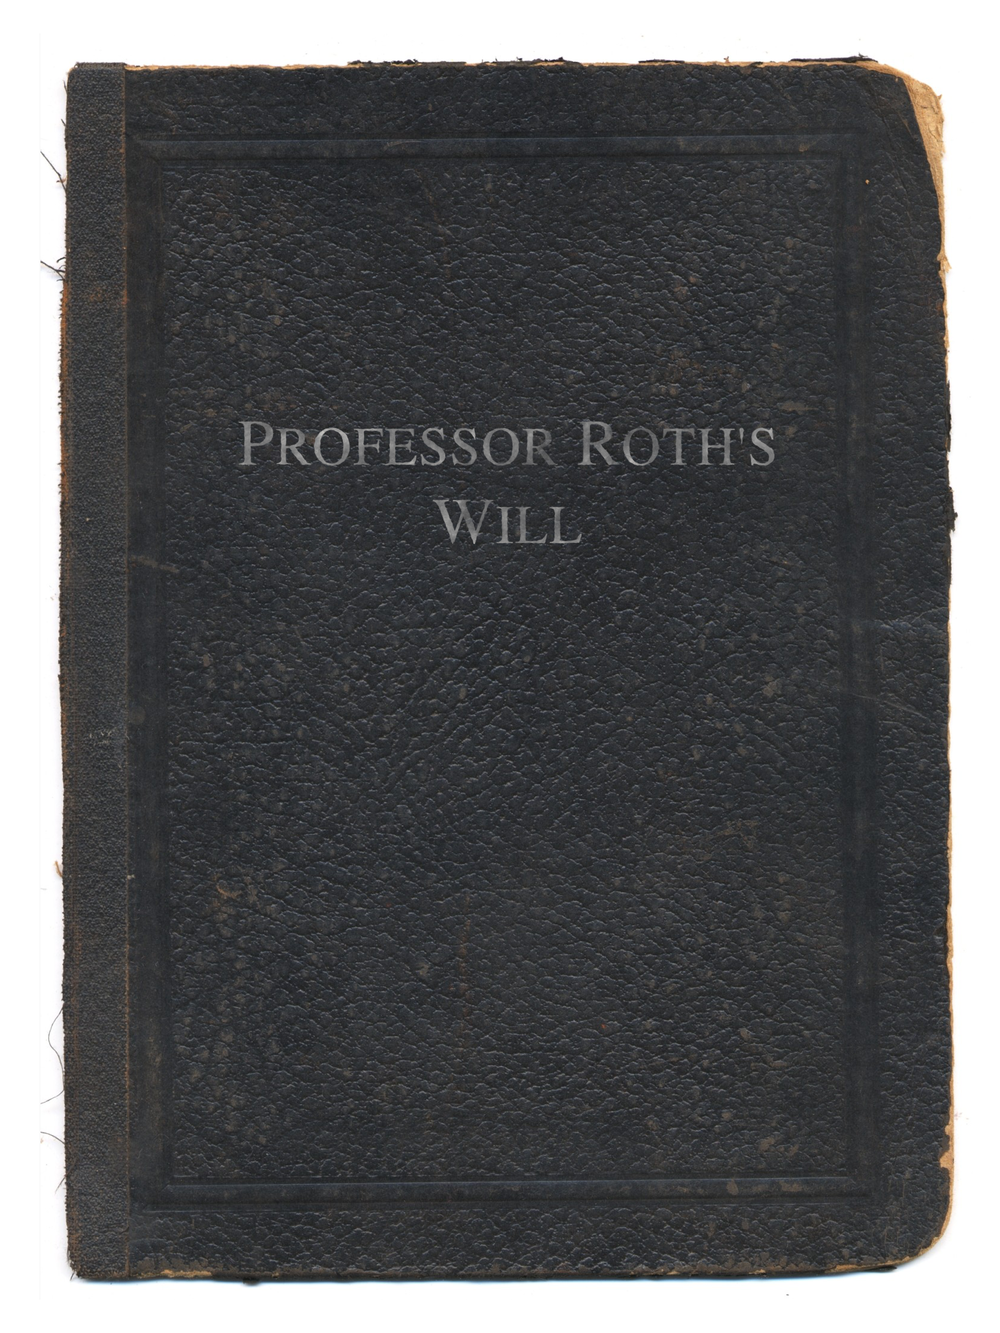 PROFESSOR ROTH'S WILL